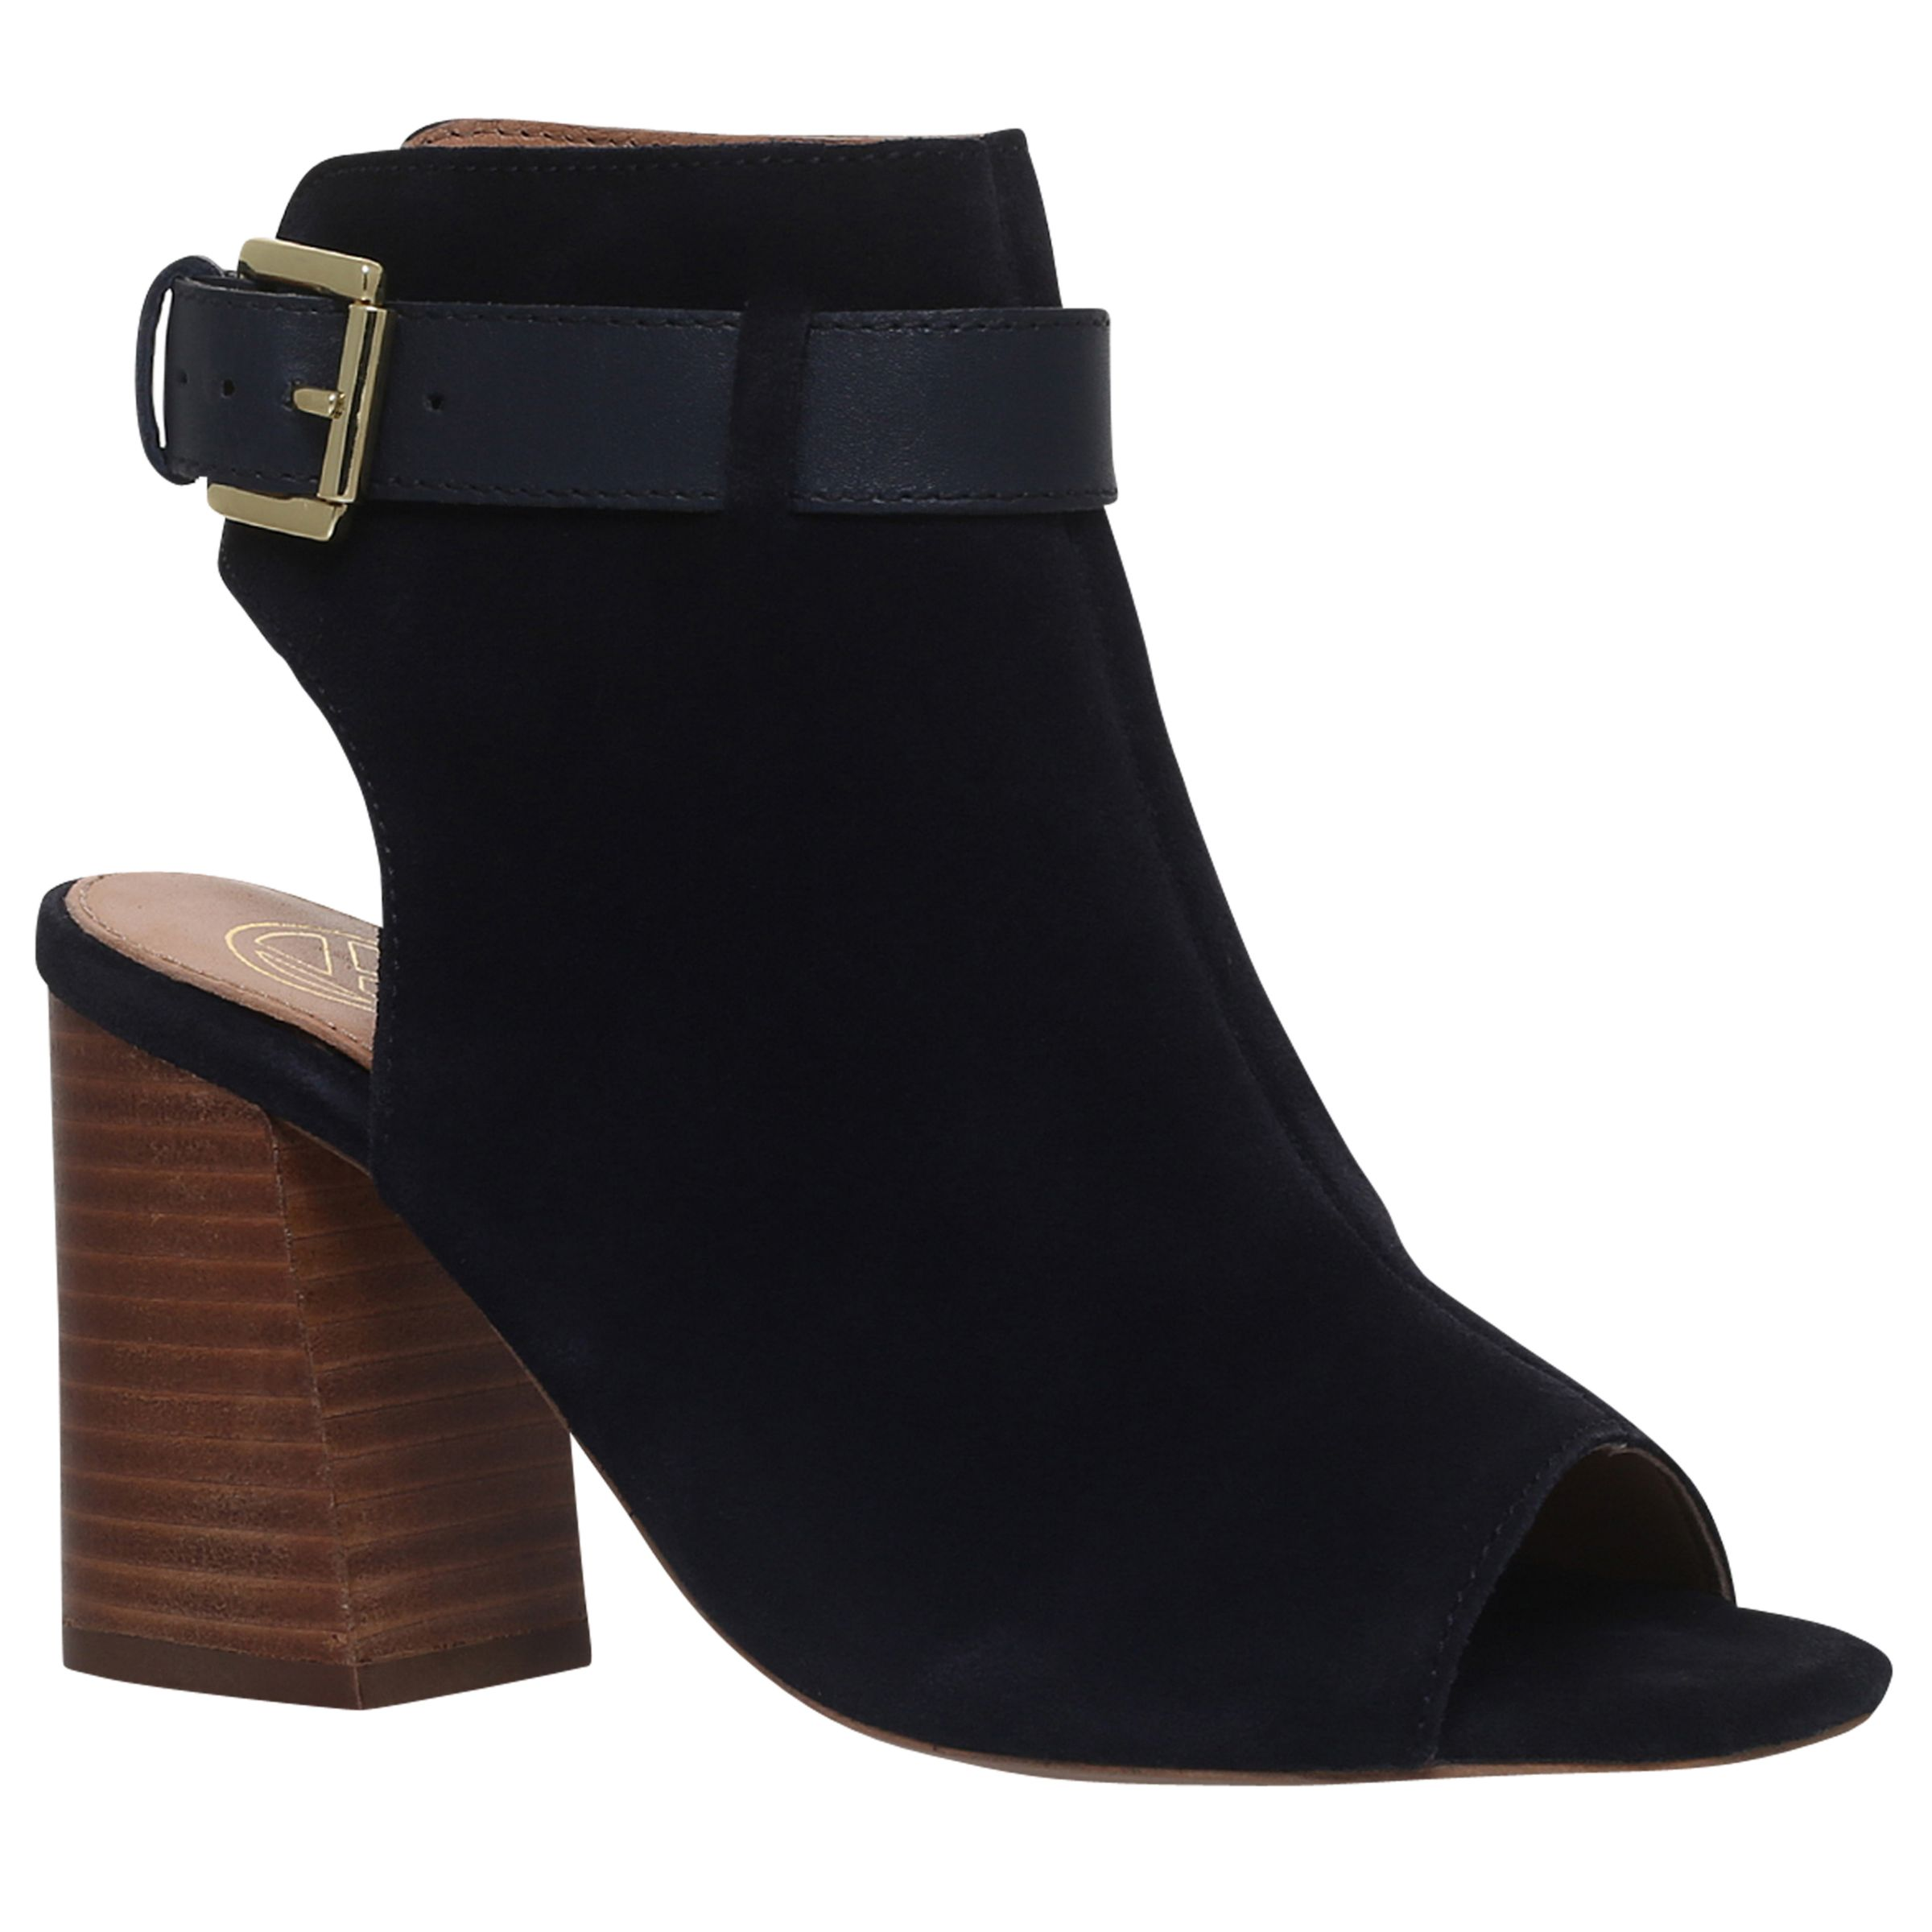 KG by Kurt Geiger KG by Kurt Geiger Ripple Peep Toe Ankle Boots